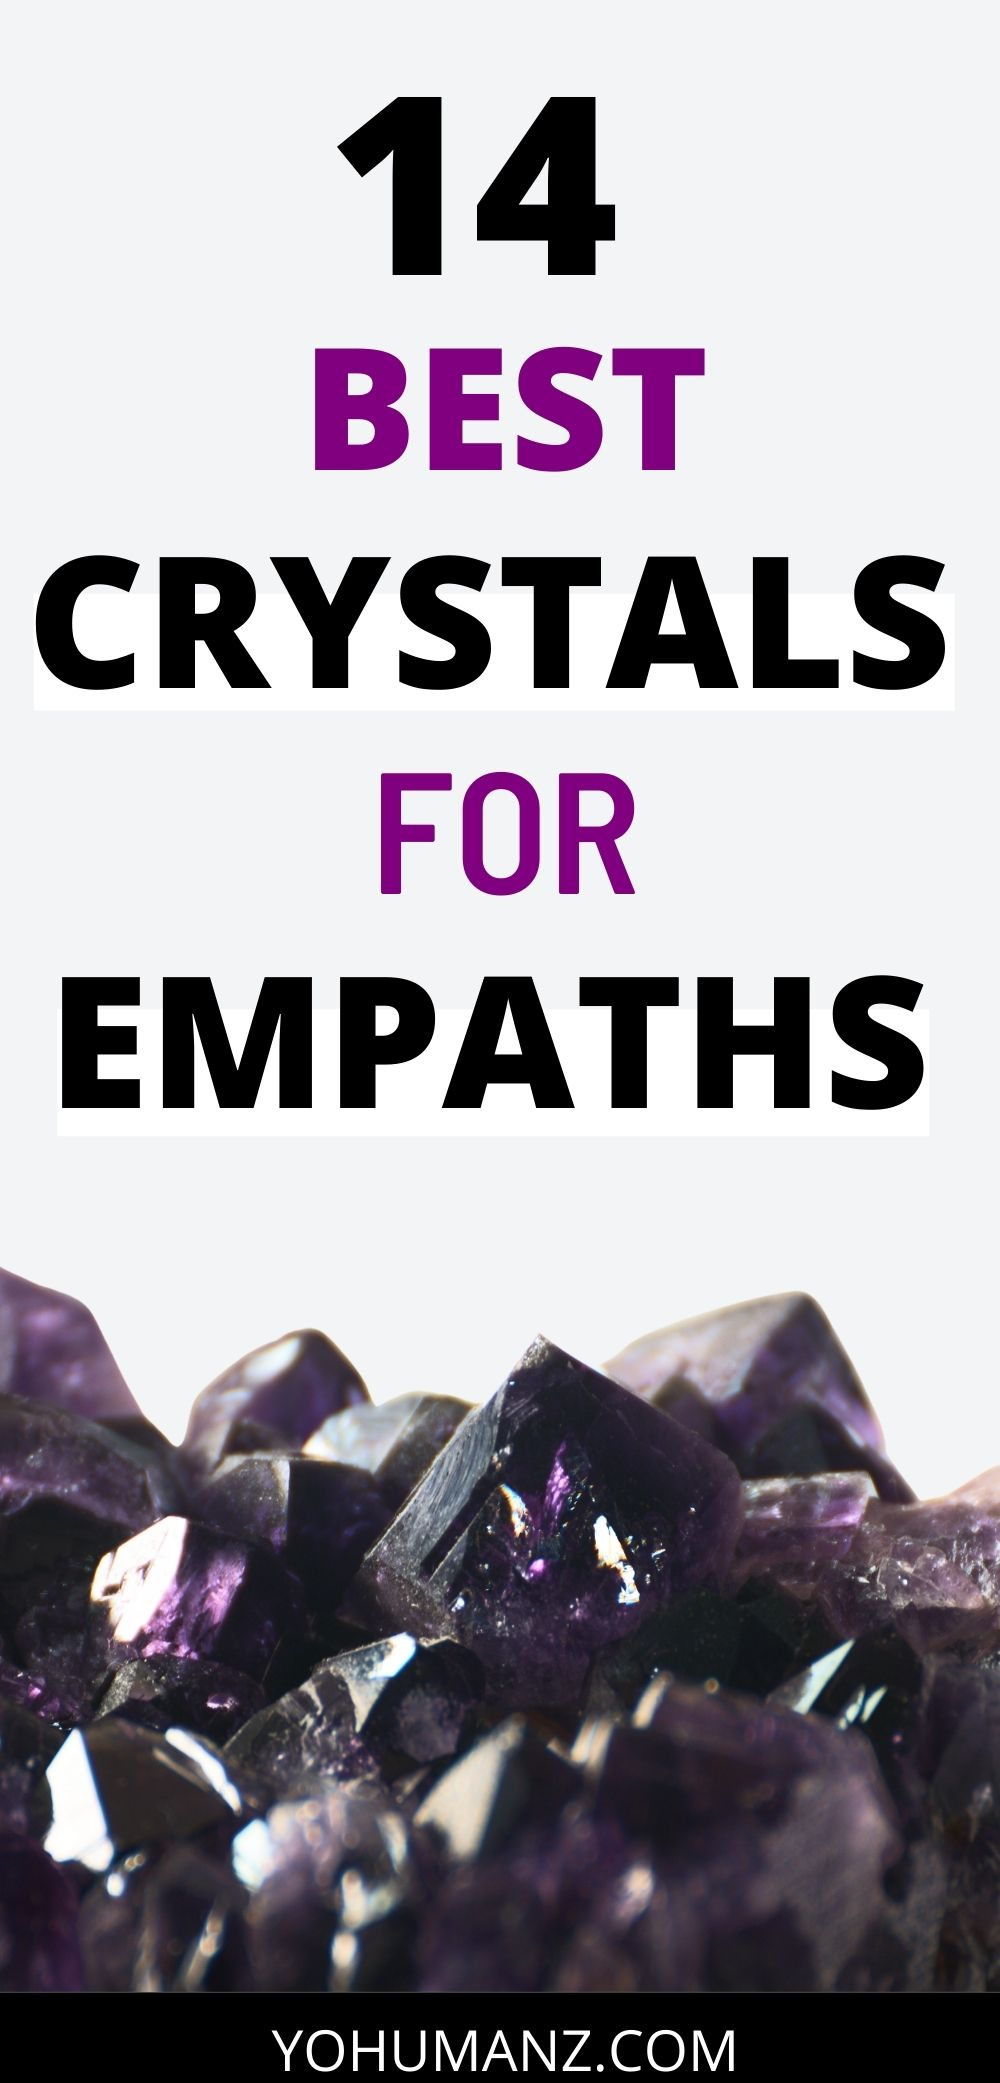 Best Crystals for Empaths